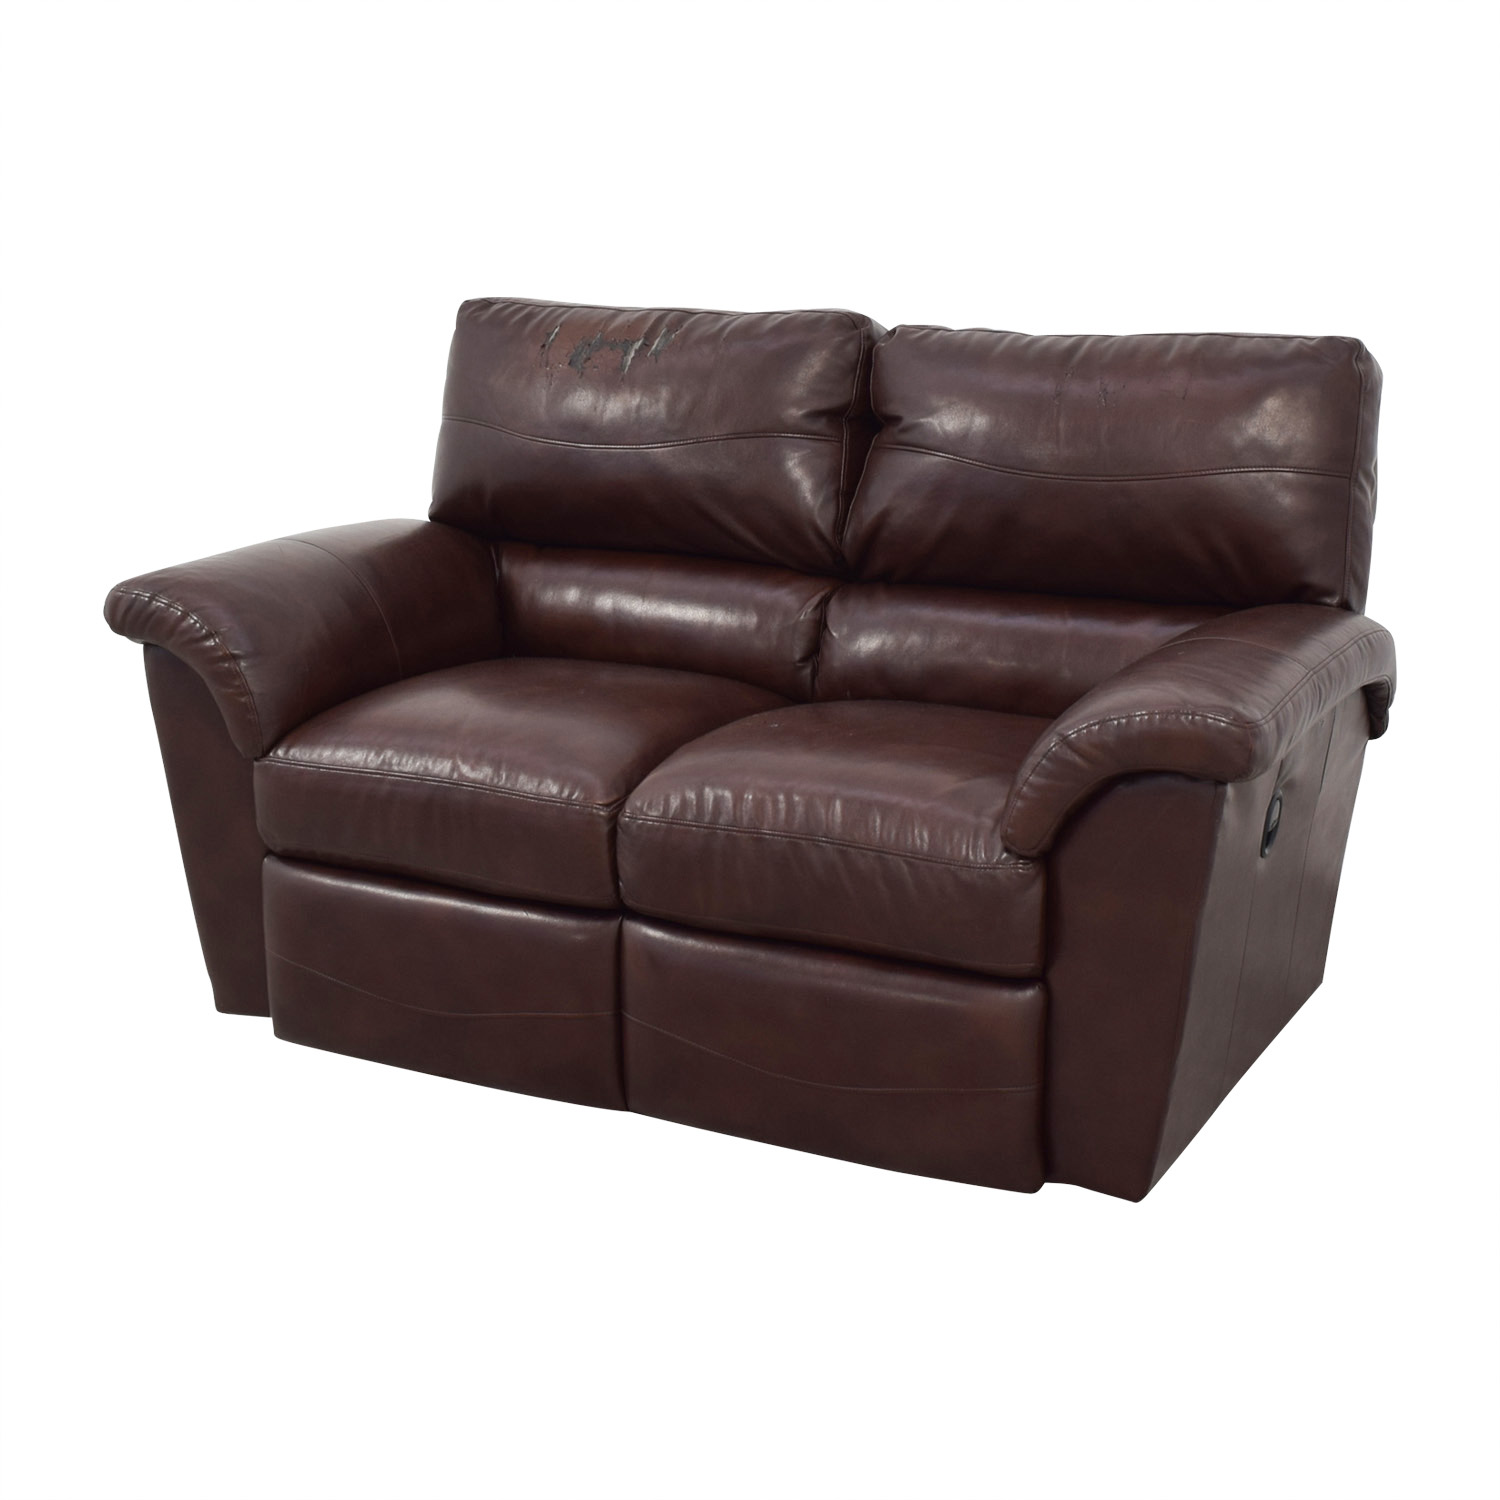 La-Z-Boy Oscar Reclining Loveseat La-Z-Boy